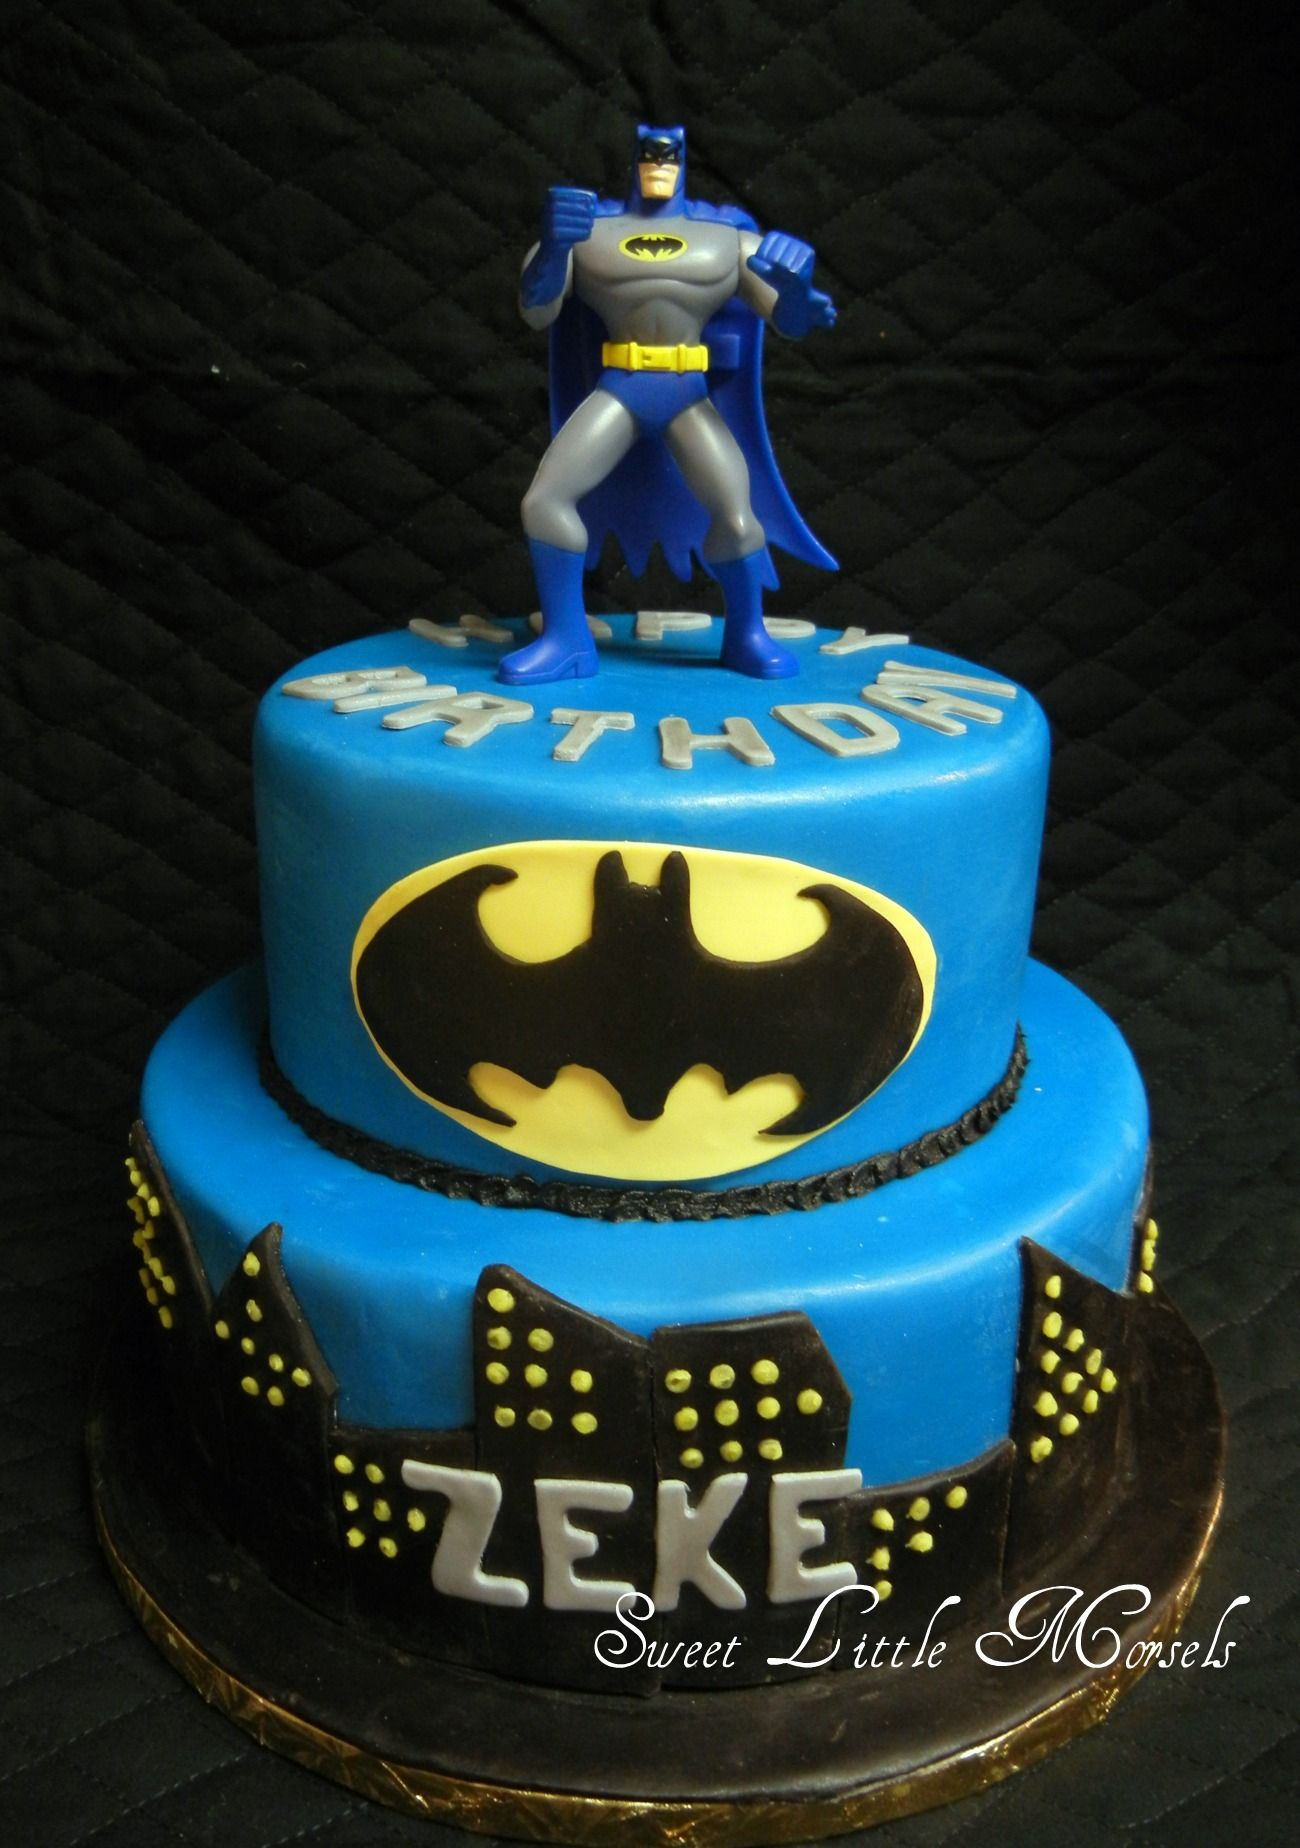 25 Incredible Batman Cakes for your Next Batmanthemed Birthday